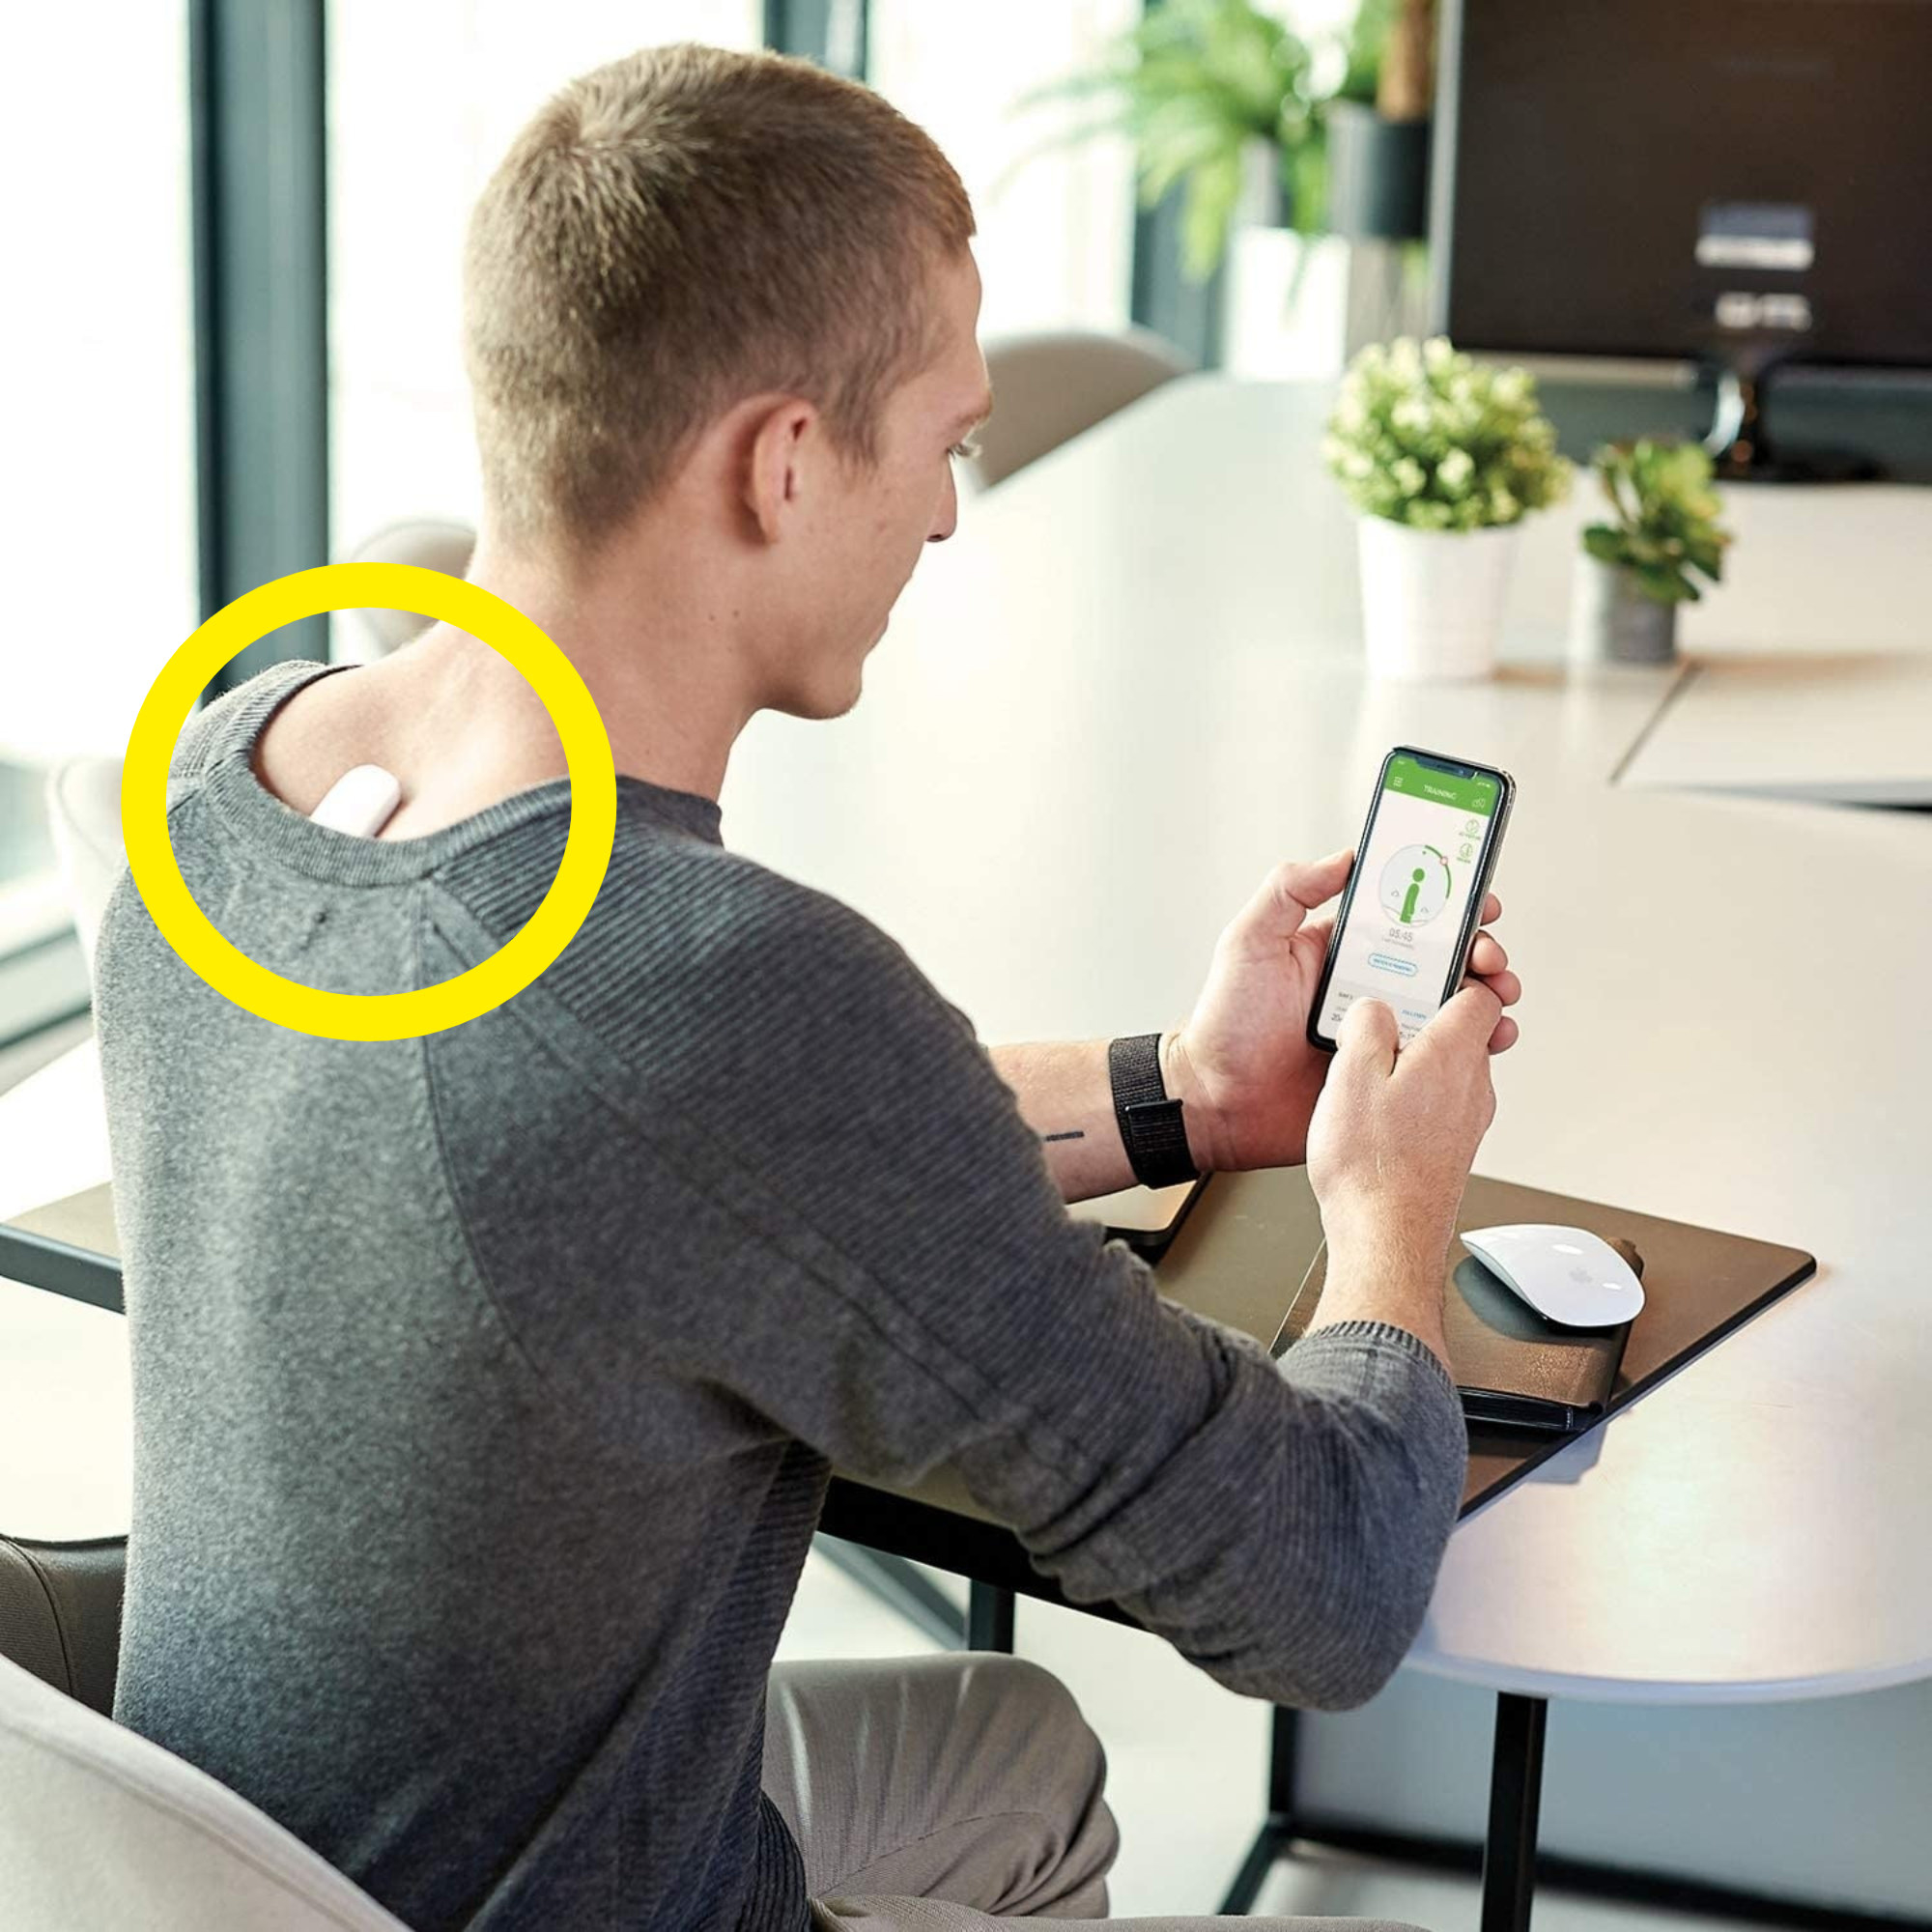 A person wearing the posture corrector on their back while looking at the app on their phone